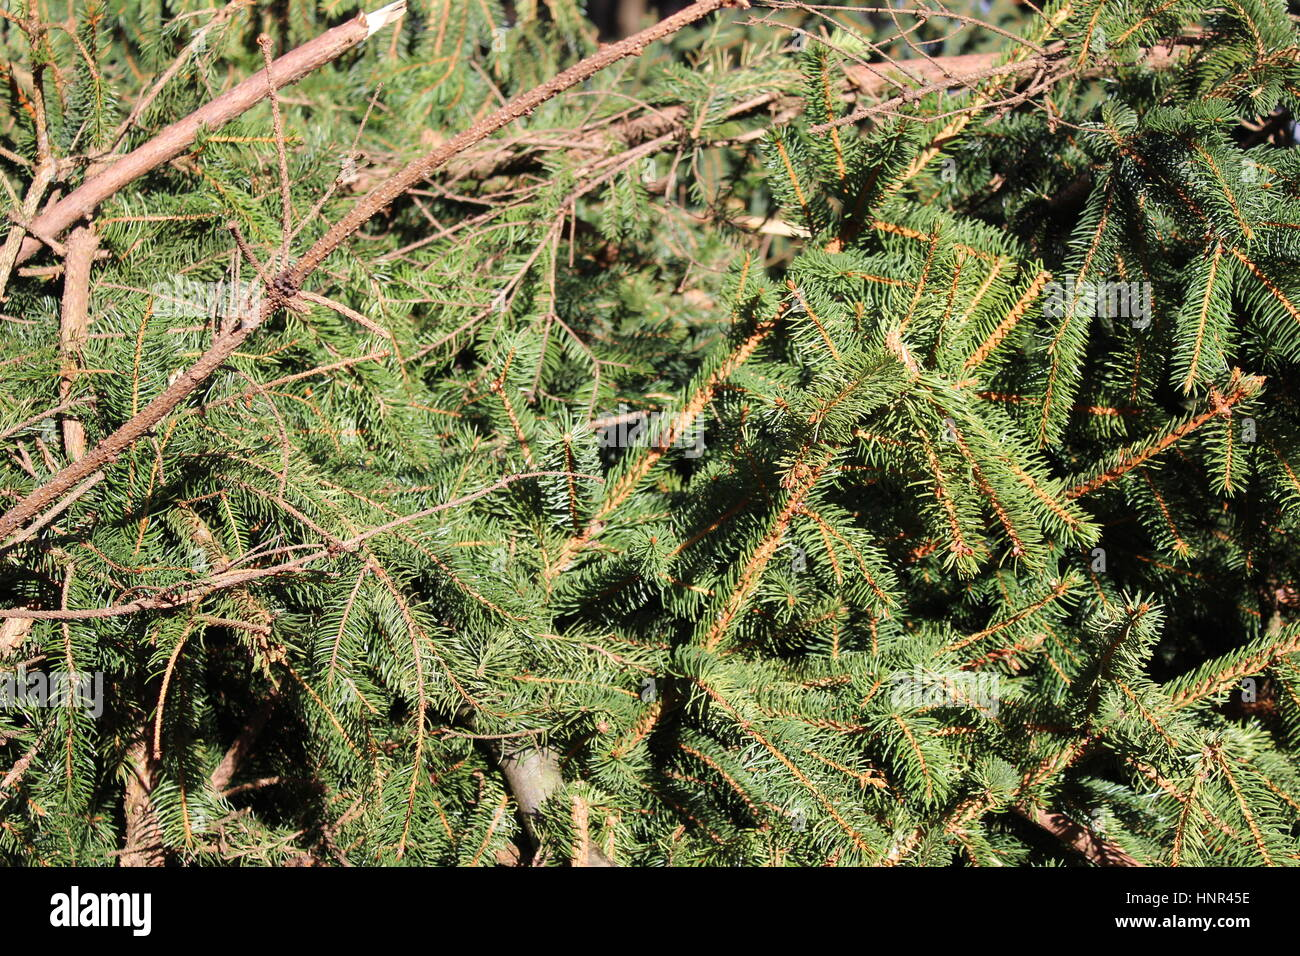 Felled conifer - Stock Image